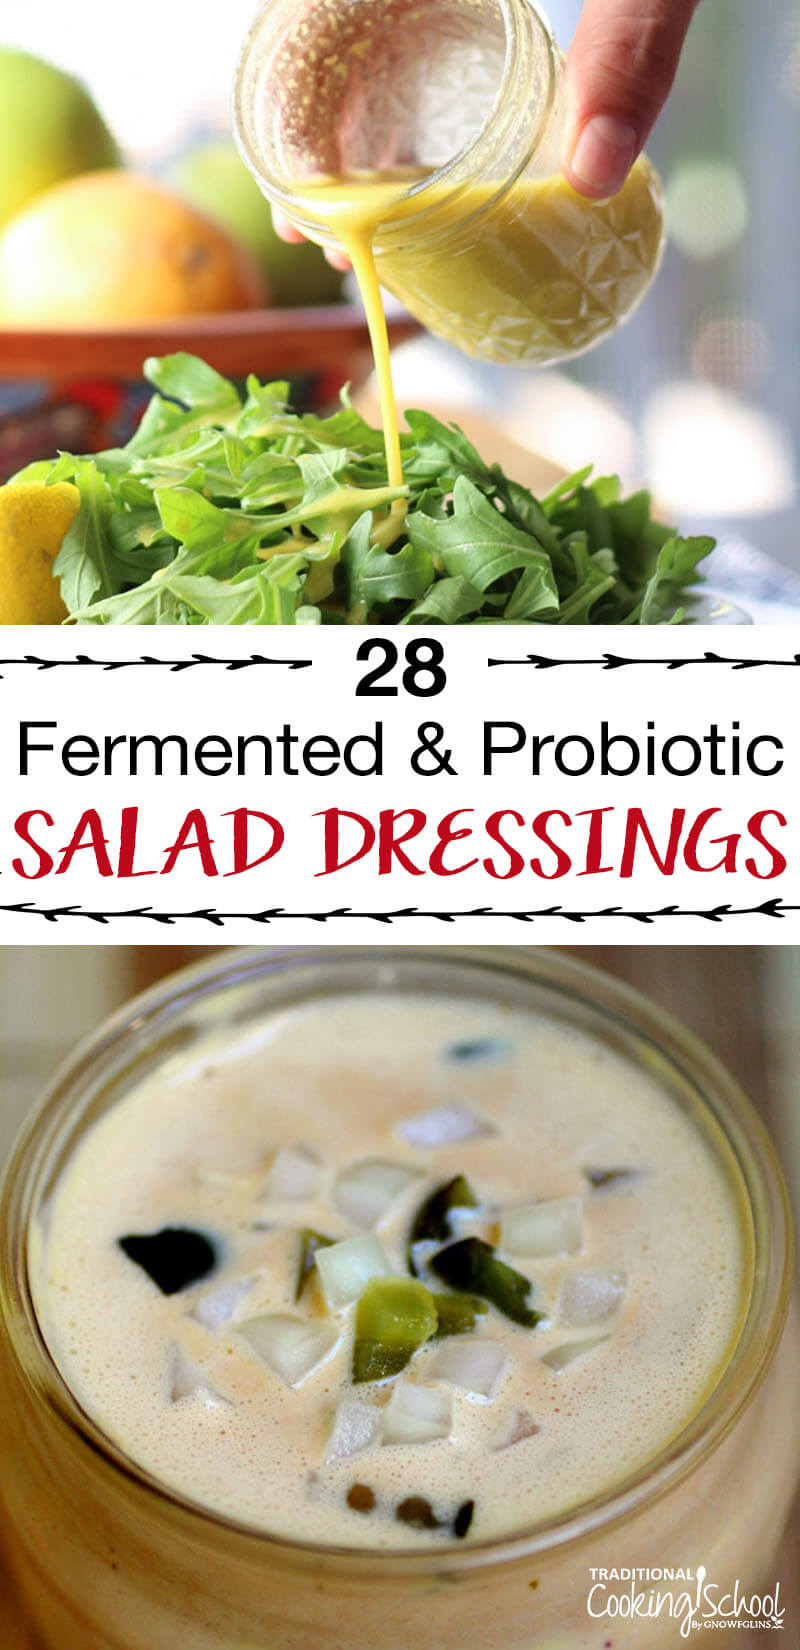 28 Fermented and Probiotic Salad Dressings | Know the feeling? You get attached to a certain bottled or restaurant dressing; then you find out it's full of junk. This round-up of 28 homemade, healthy, fermented and probiotic-filled salad dressing recipes can help! Everything from vinaigrette, italian, balsamic, caesar, asian and greek...we've got all your keto, paleo, low-carb options here for you! #salad #dressing #recipes #homemade #fermented #probiotic #healthy